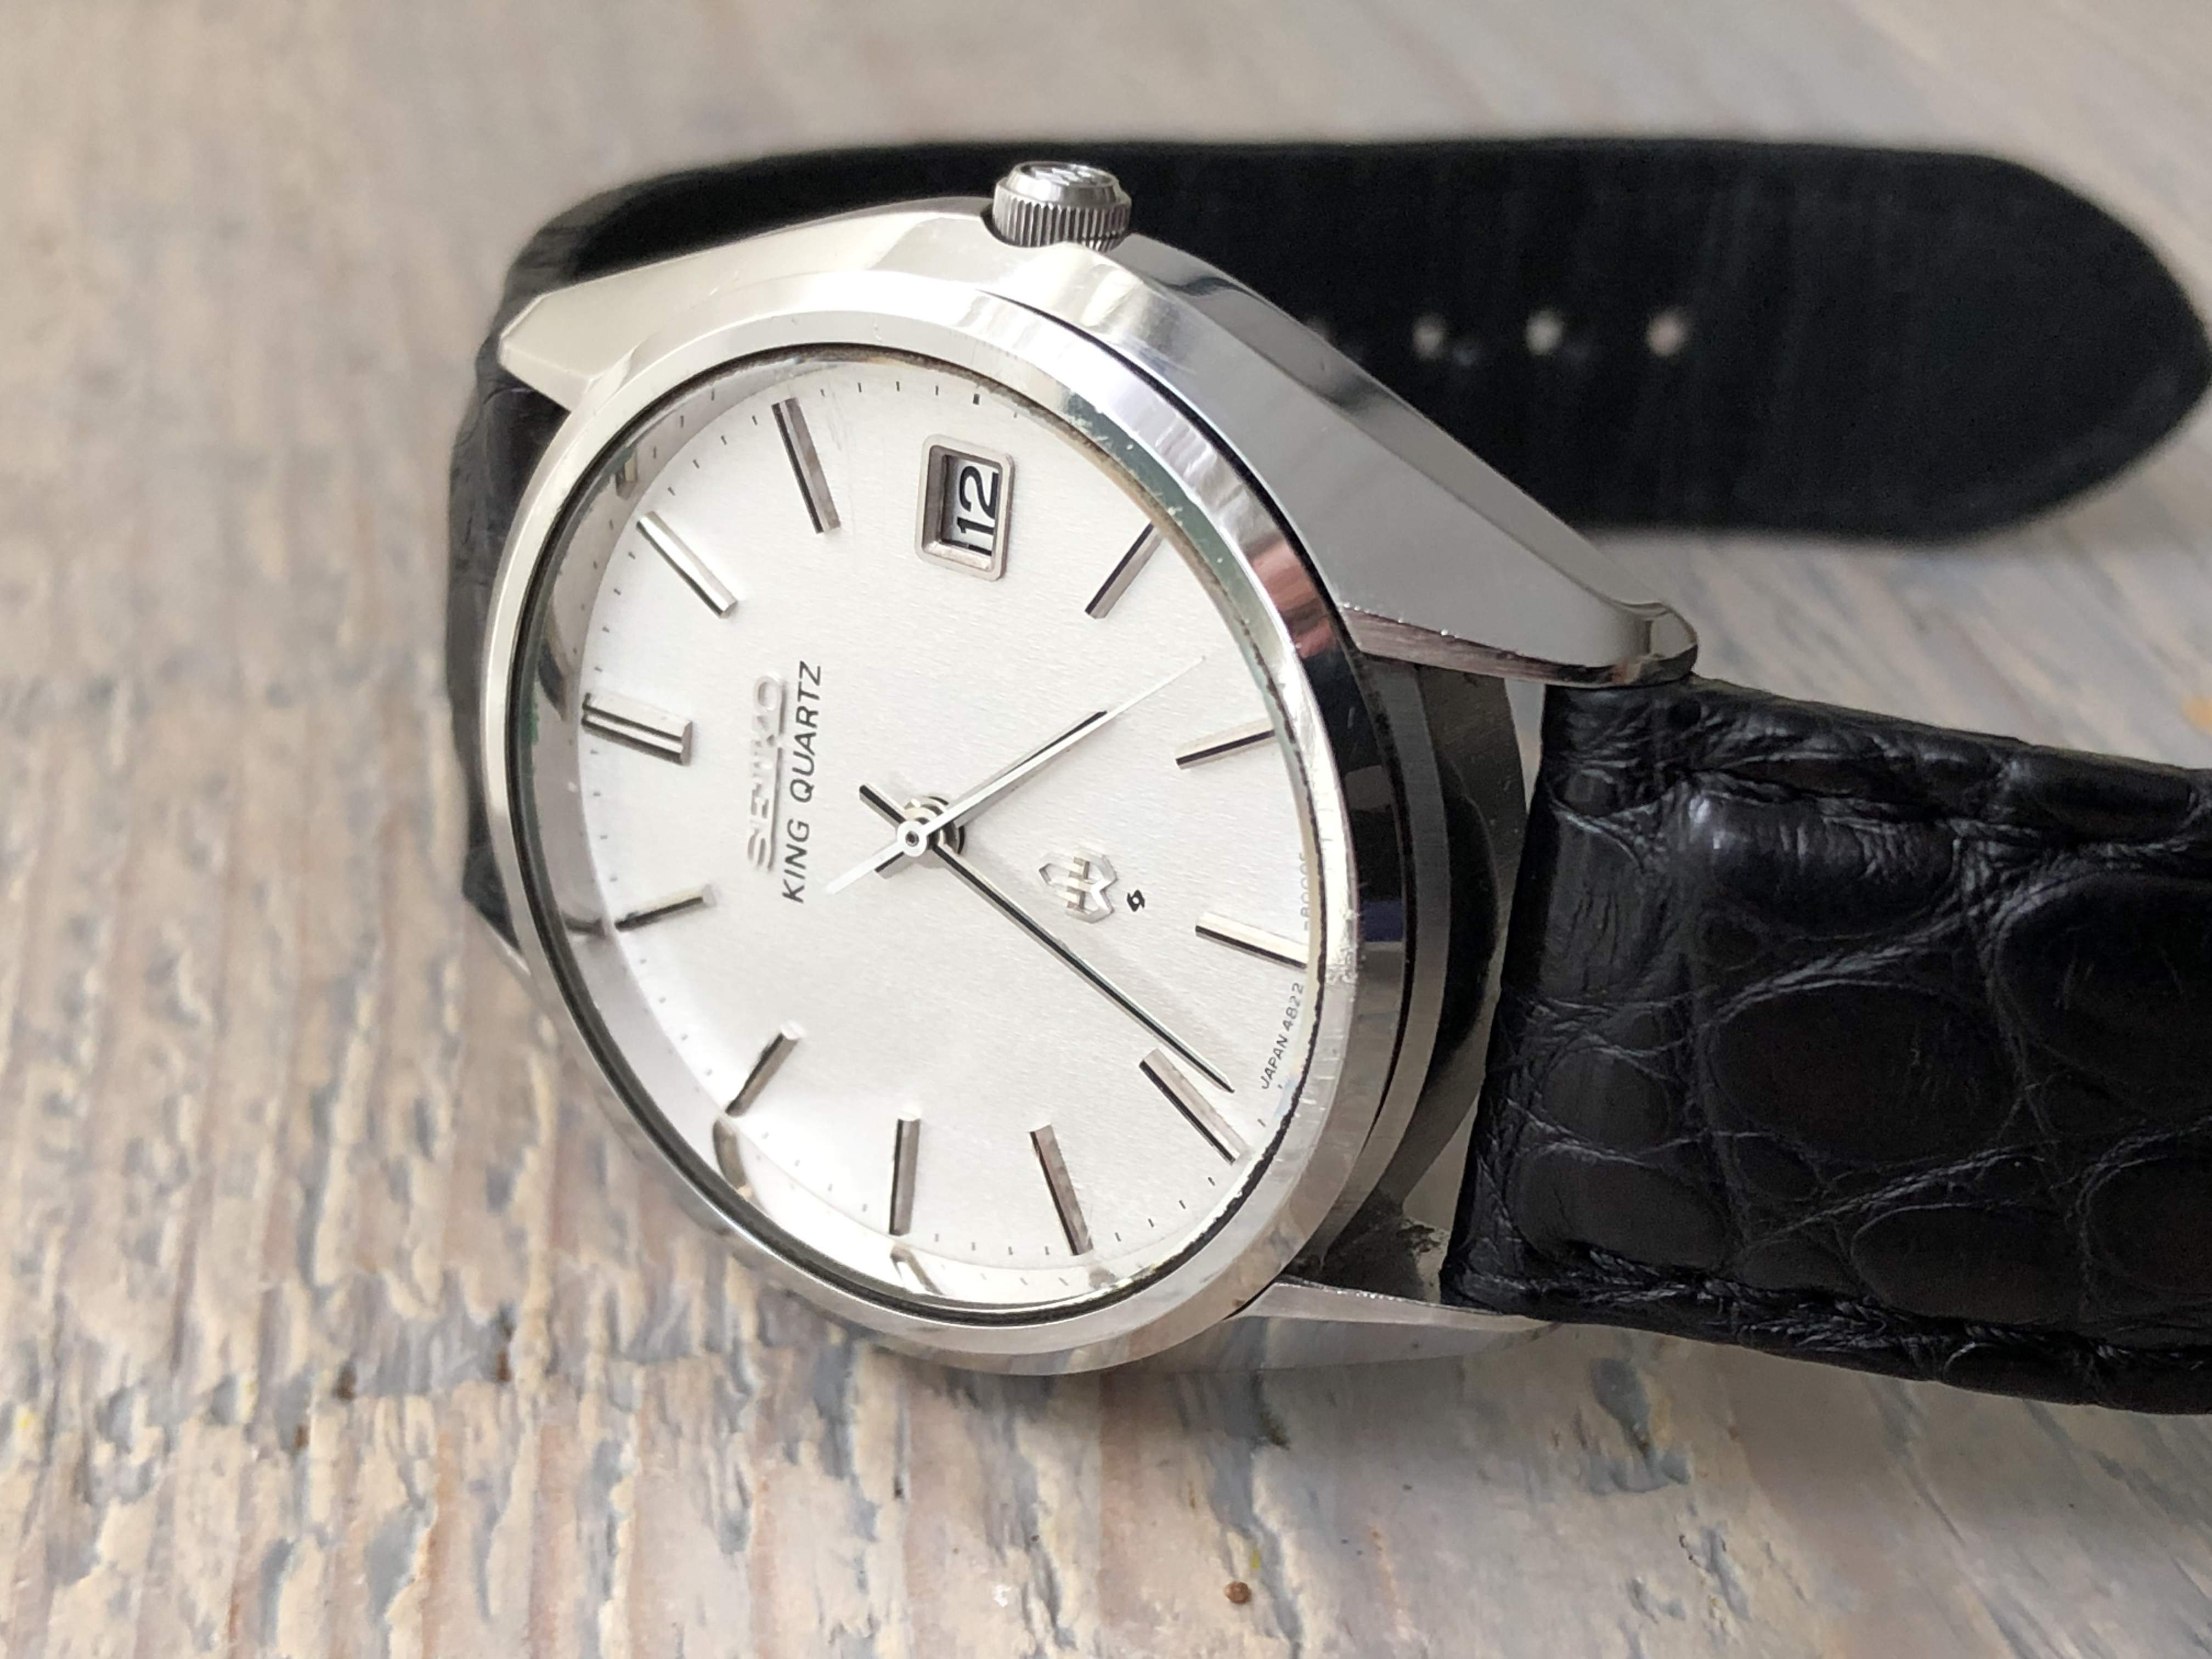 Seiko King Quartz 4822-8000 - rare! (Sold)